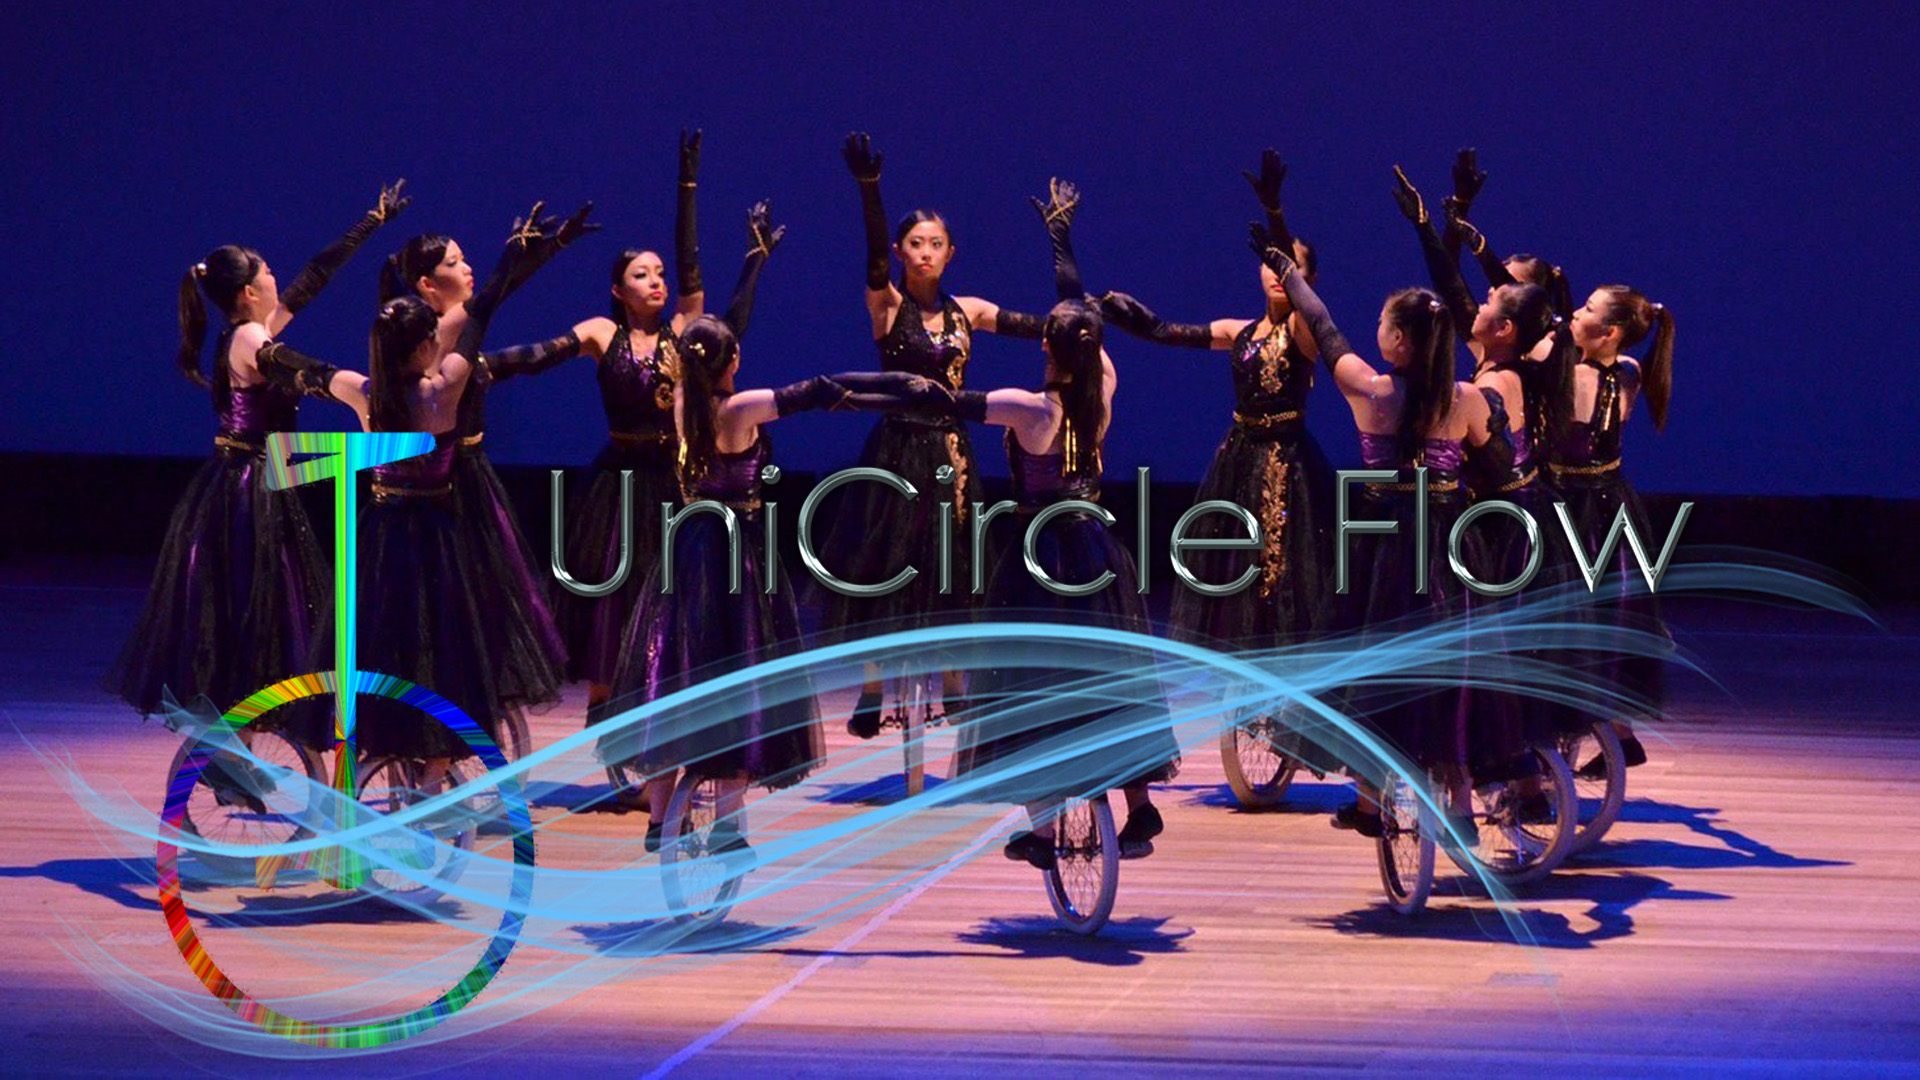 UniCircle Flow